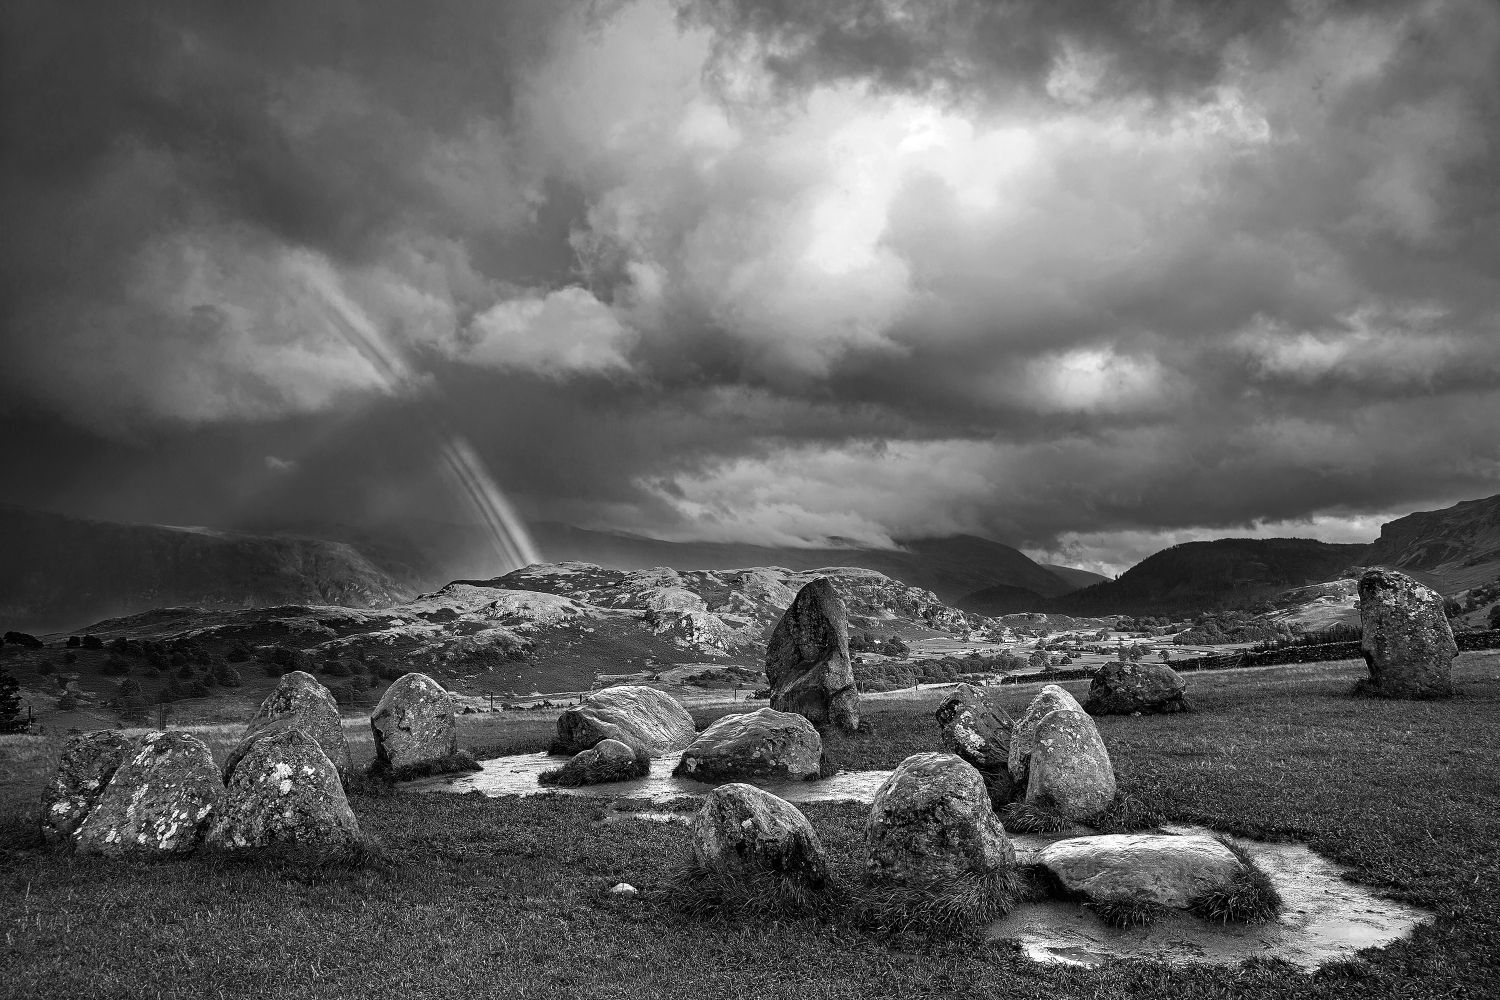 Rainbow over The Castlerigg Stone Circle in Black and White